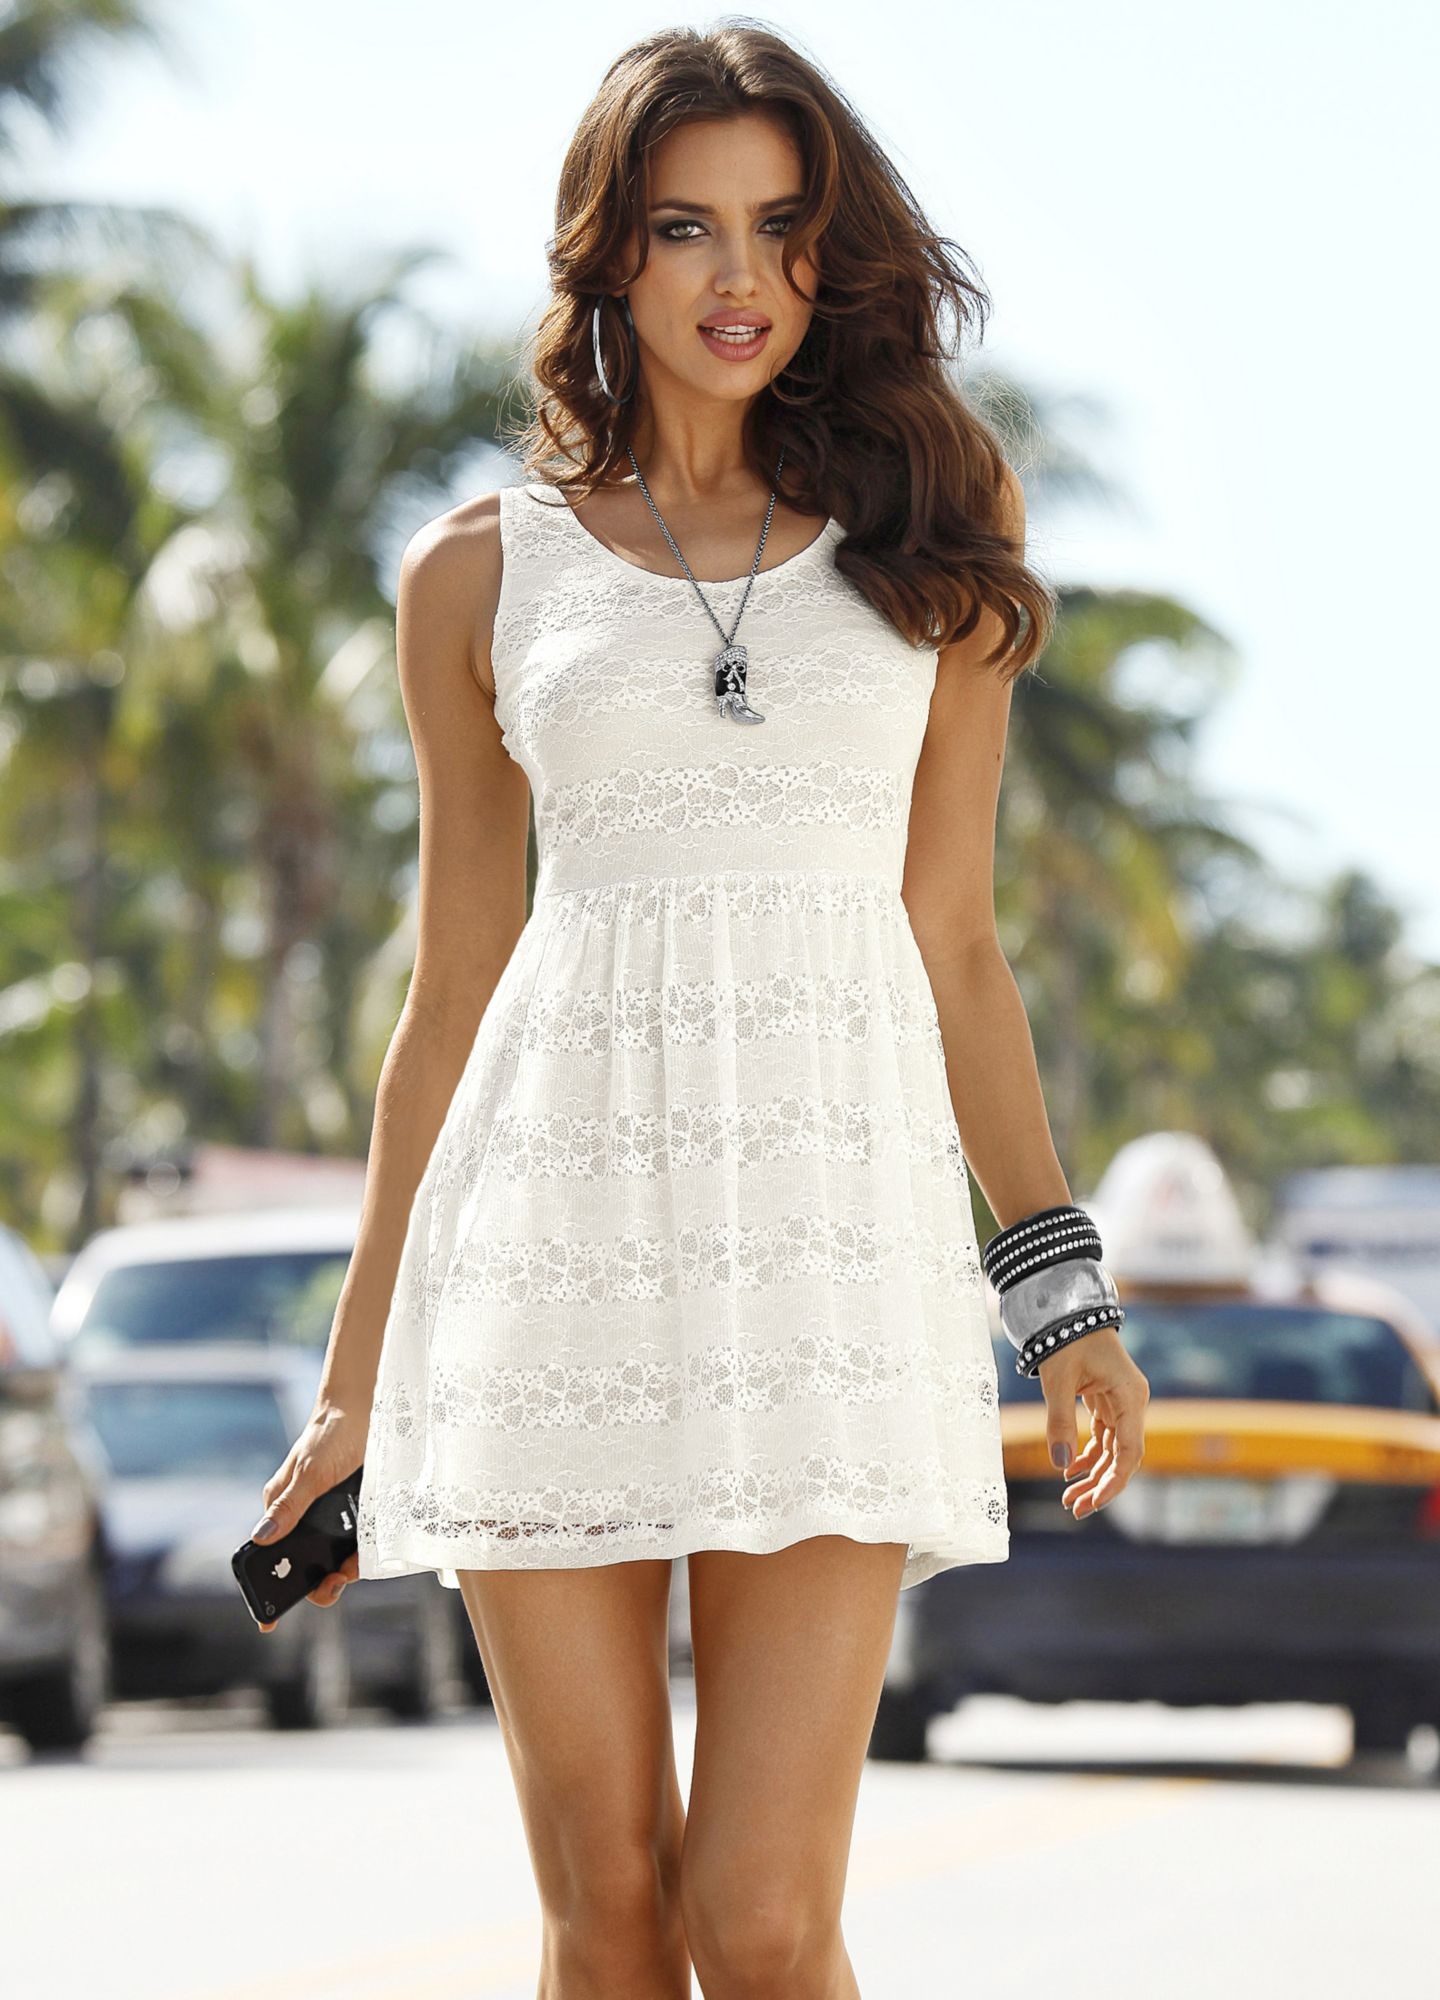 Summer Clothes For Teenage Girls: Dresses Shopping, Design Ideas, Pictures And Inspiration